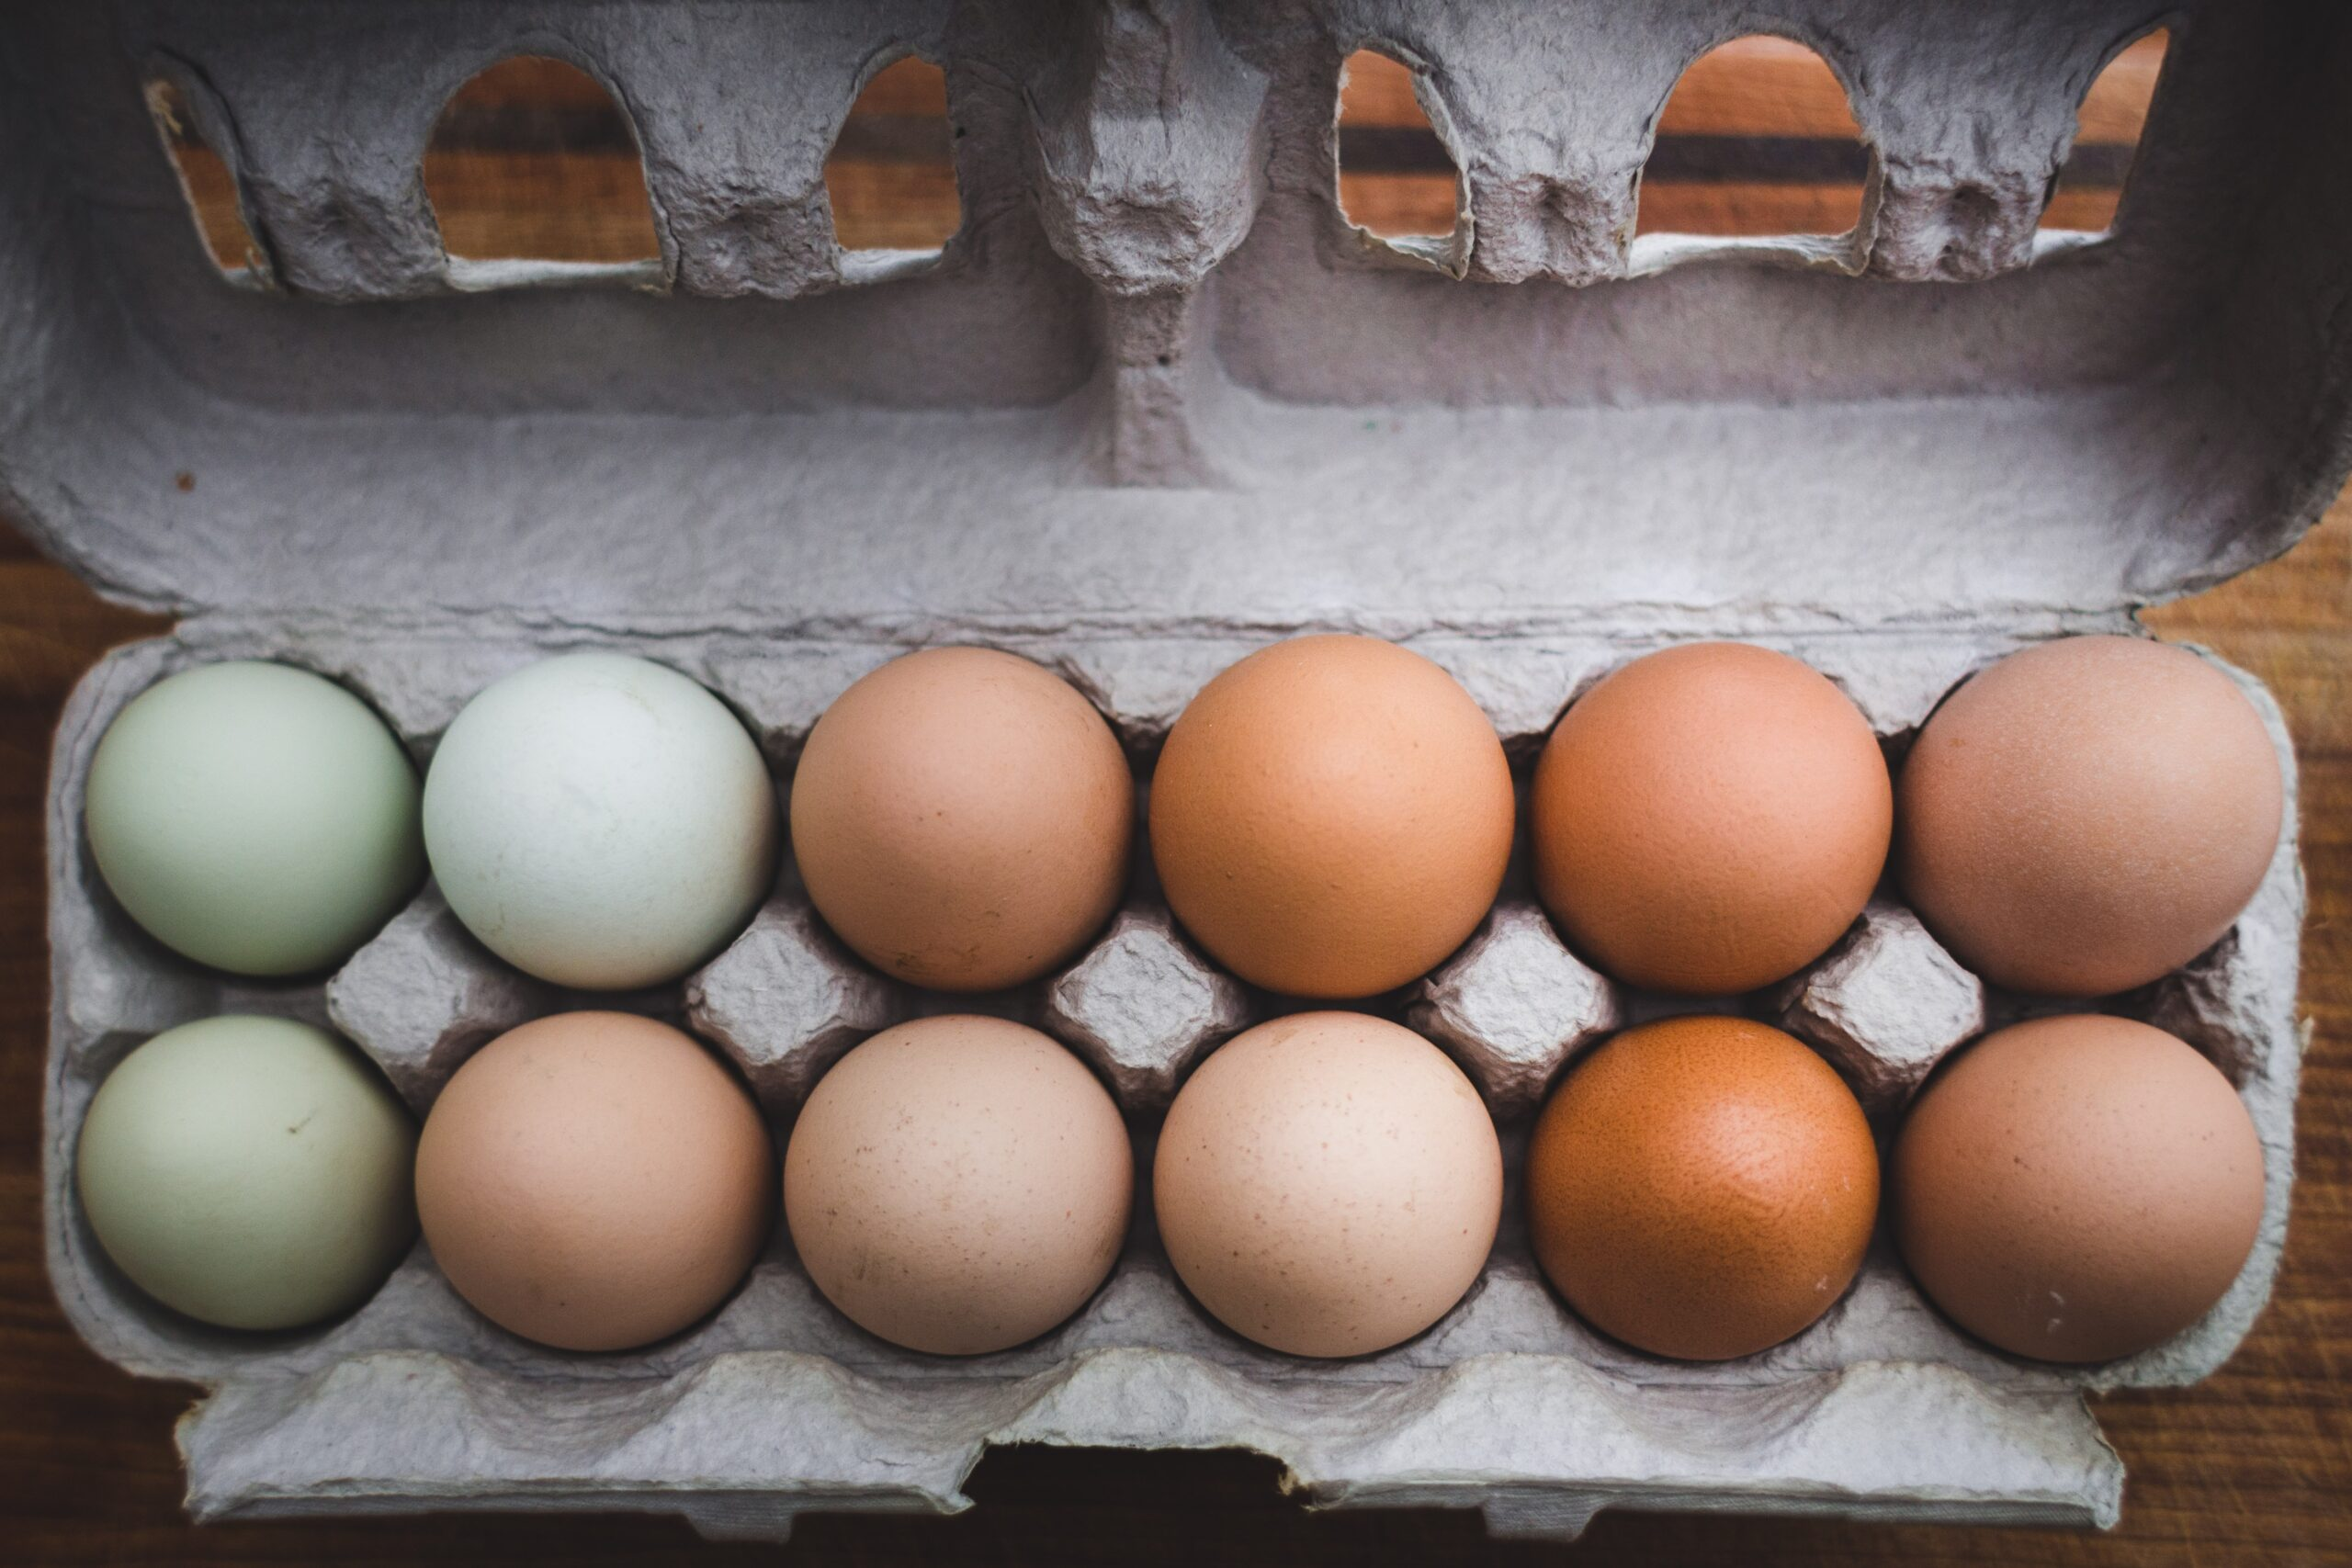 Demand for Eggs Soars During COVID